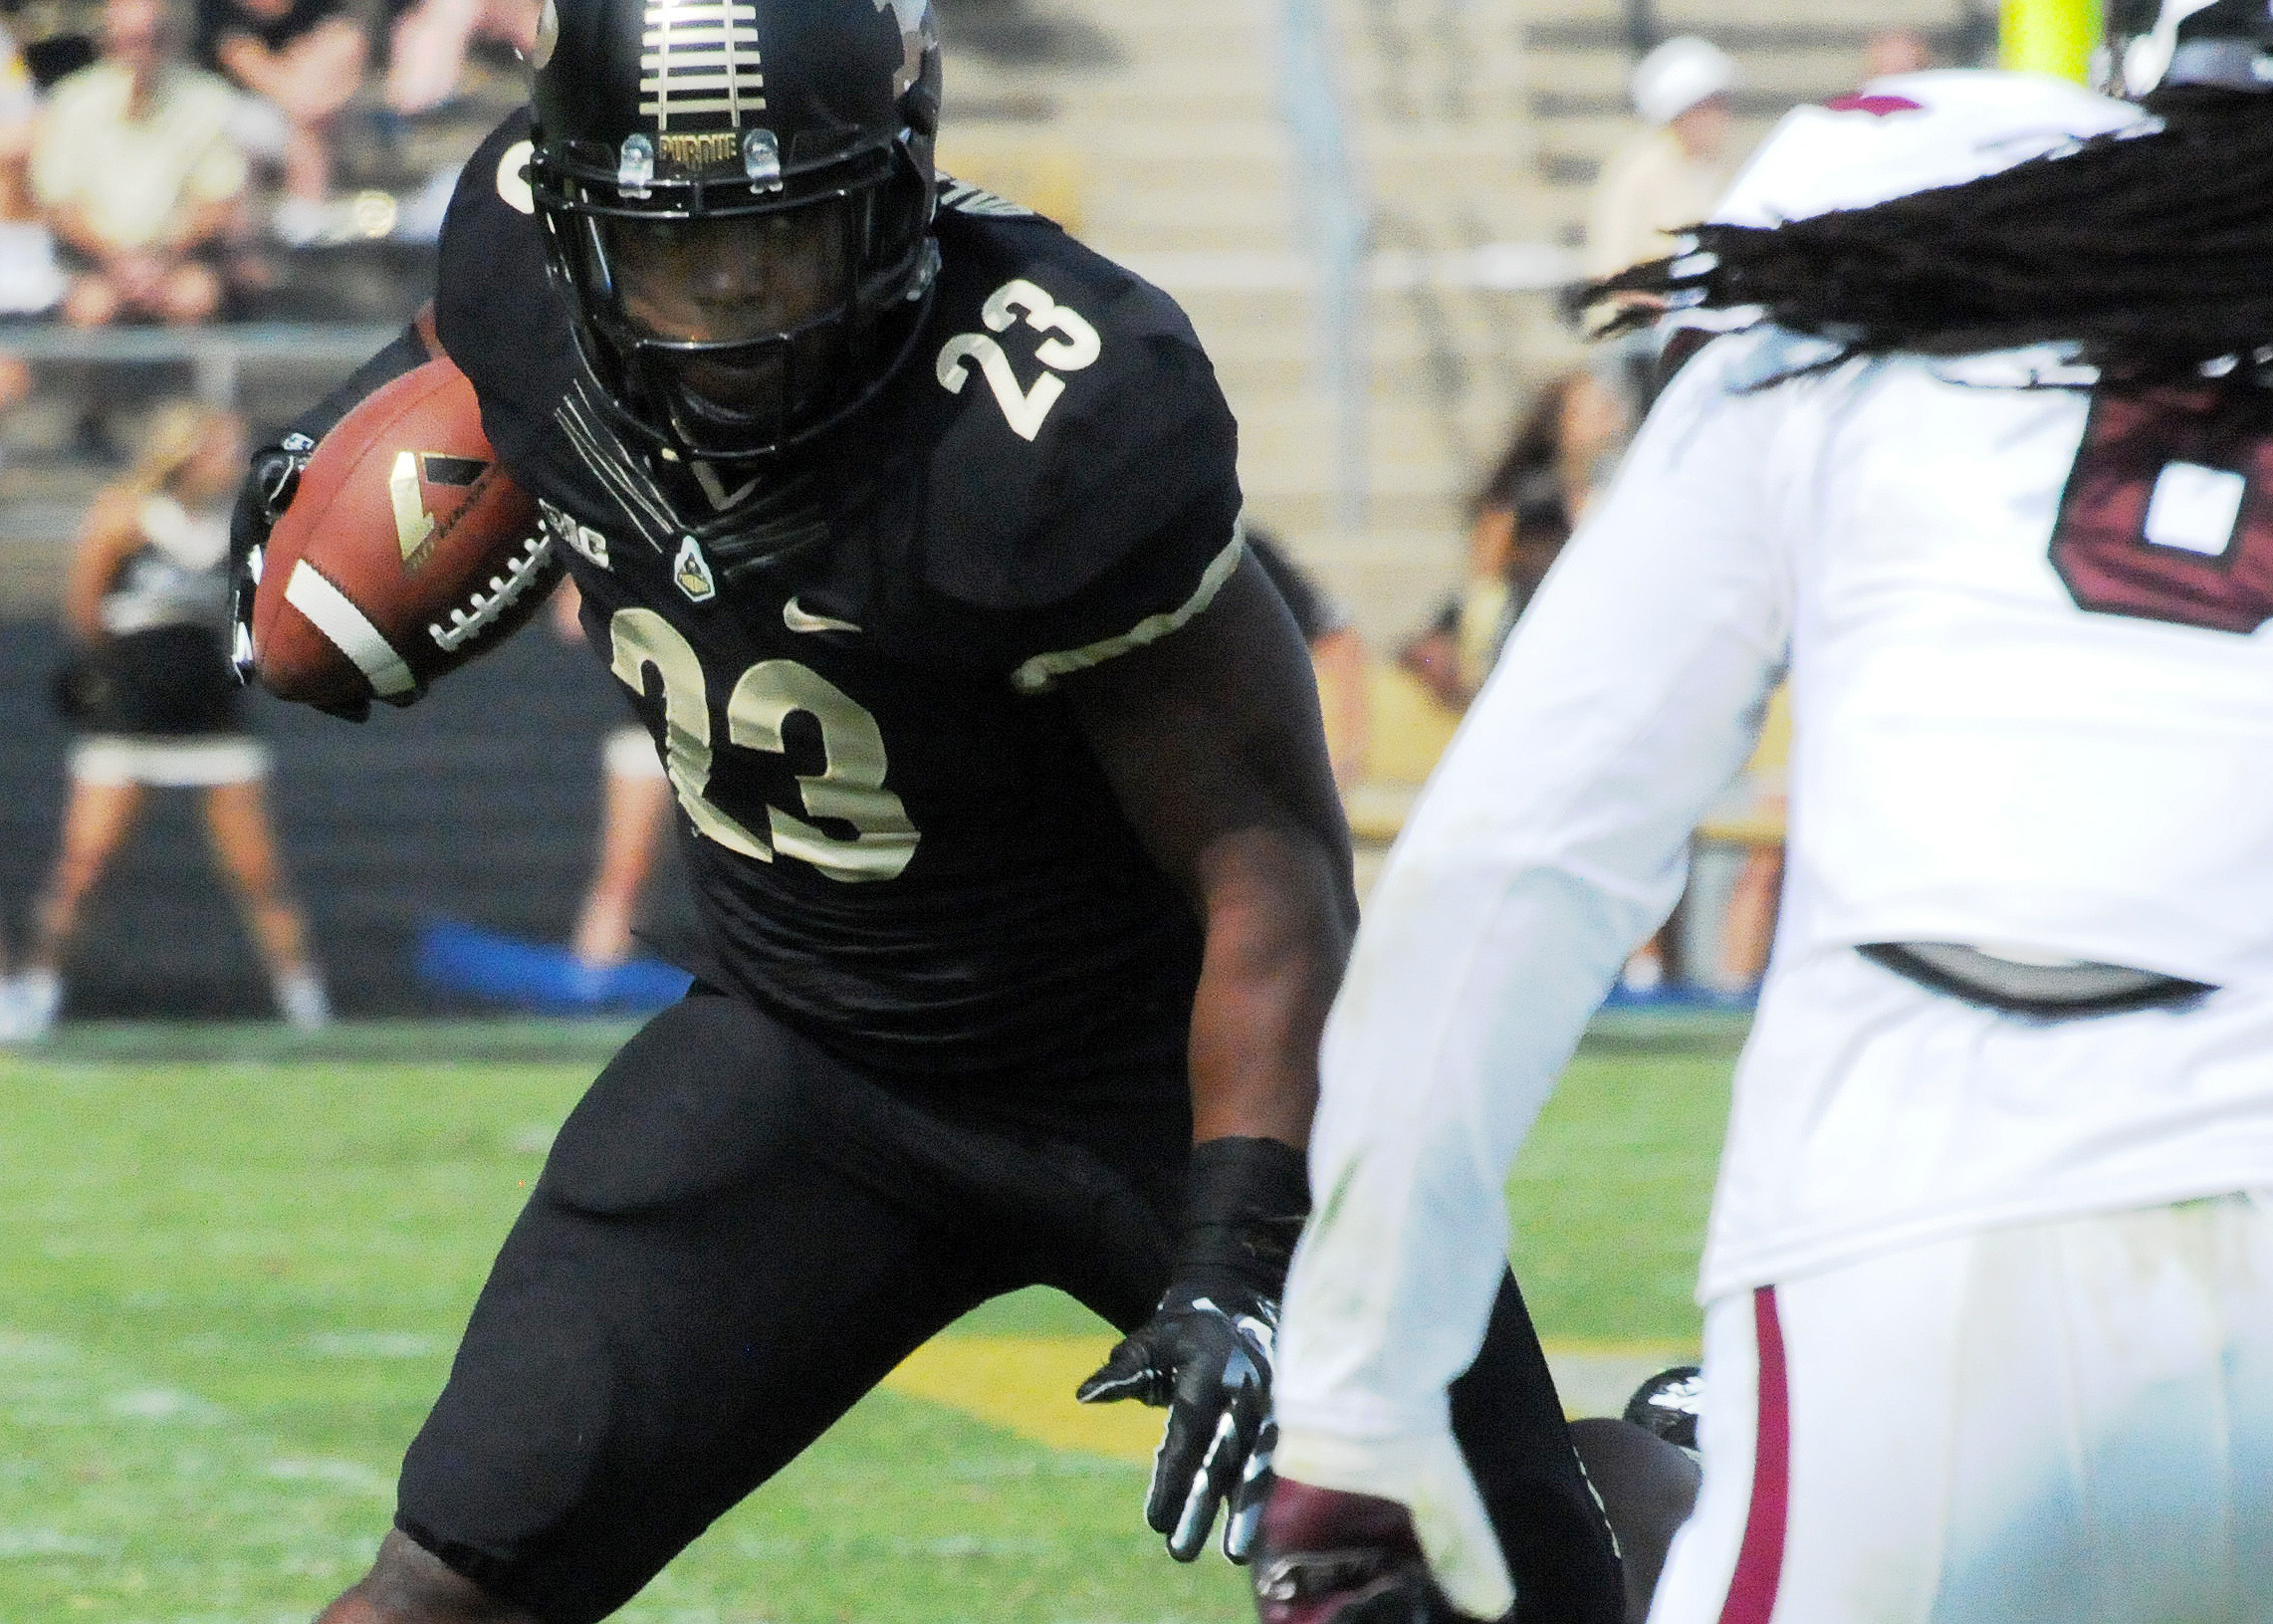 Purdue running back Keyante Green rushes against Southern Illinois.